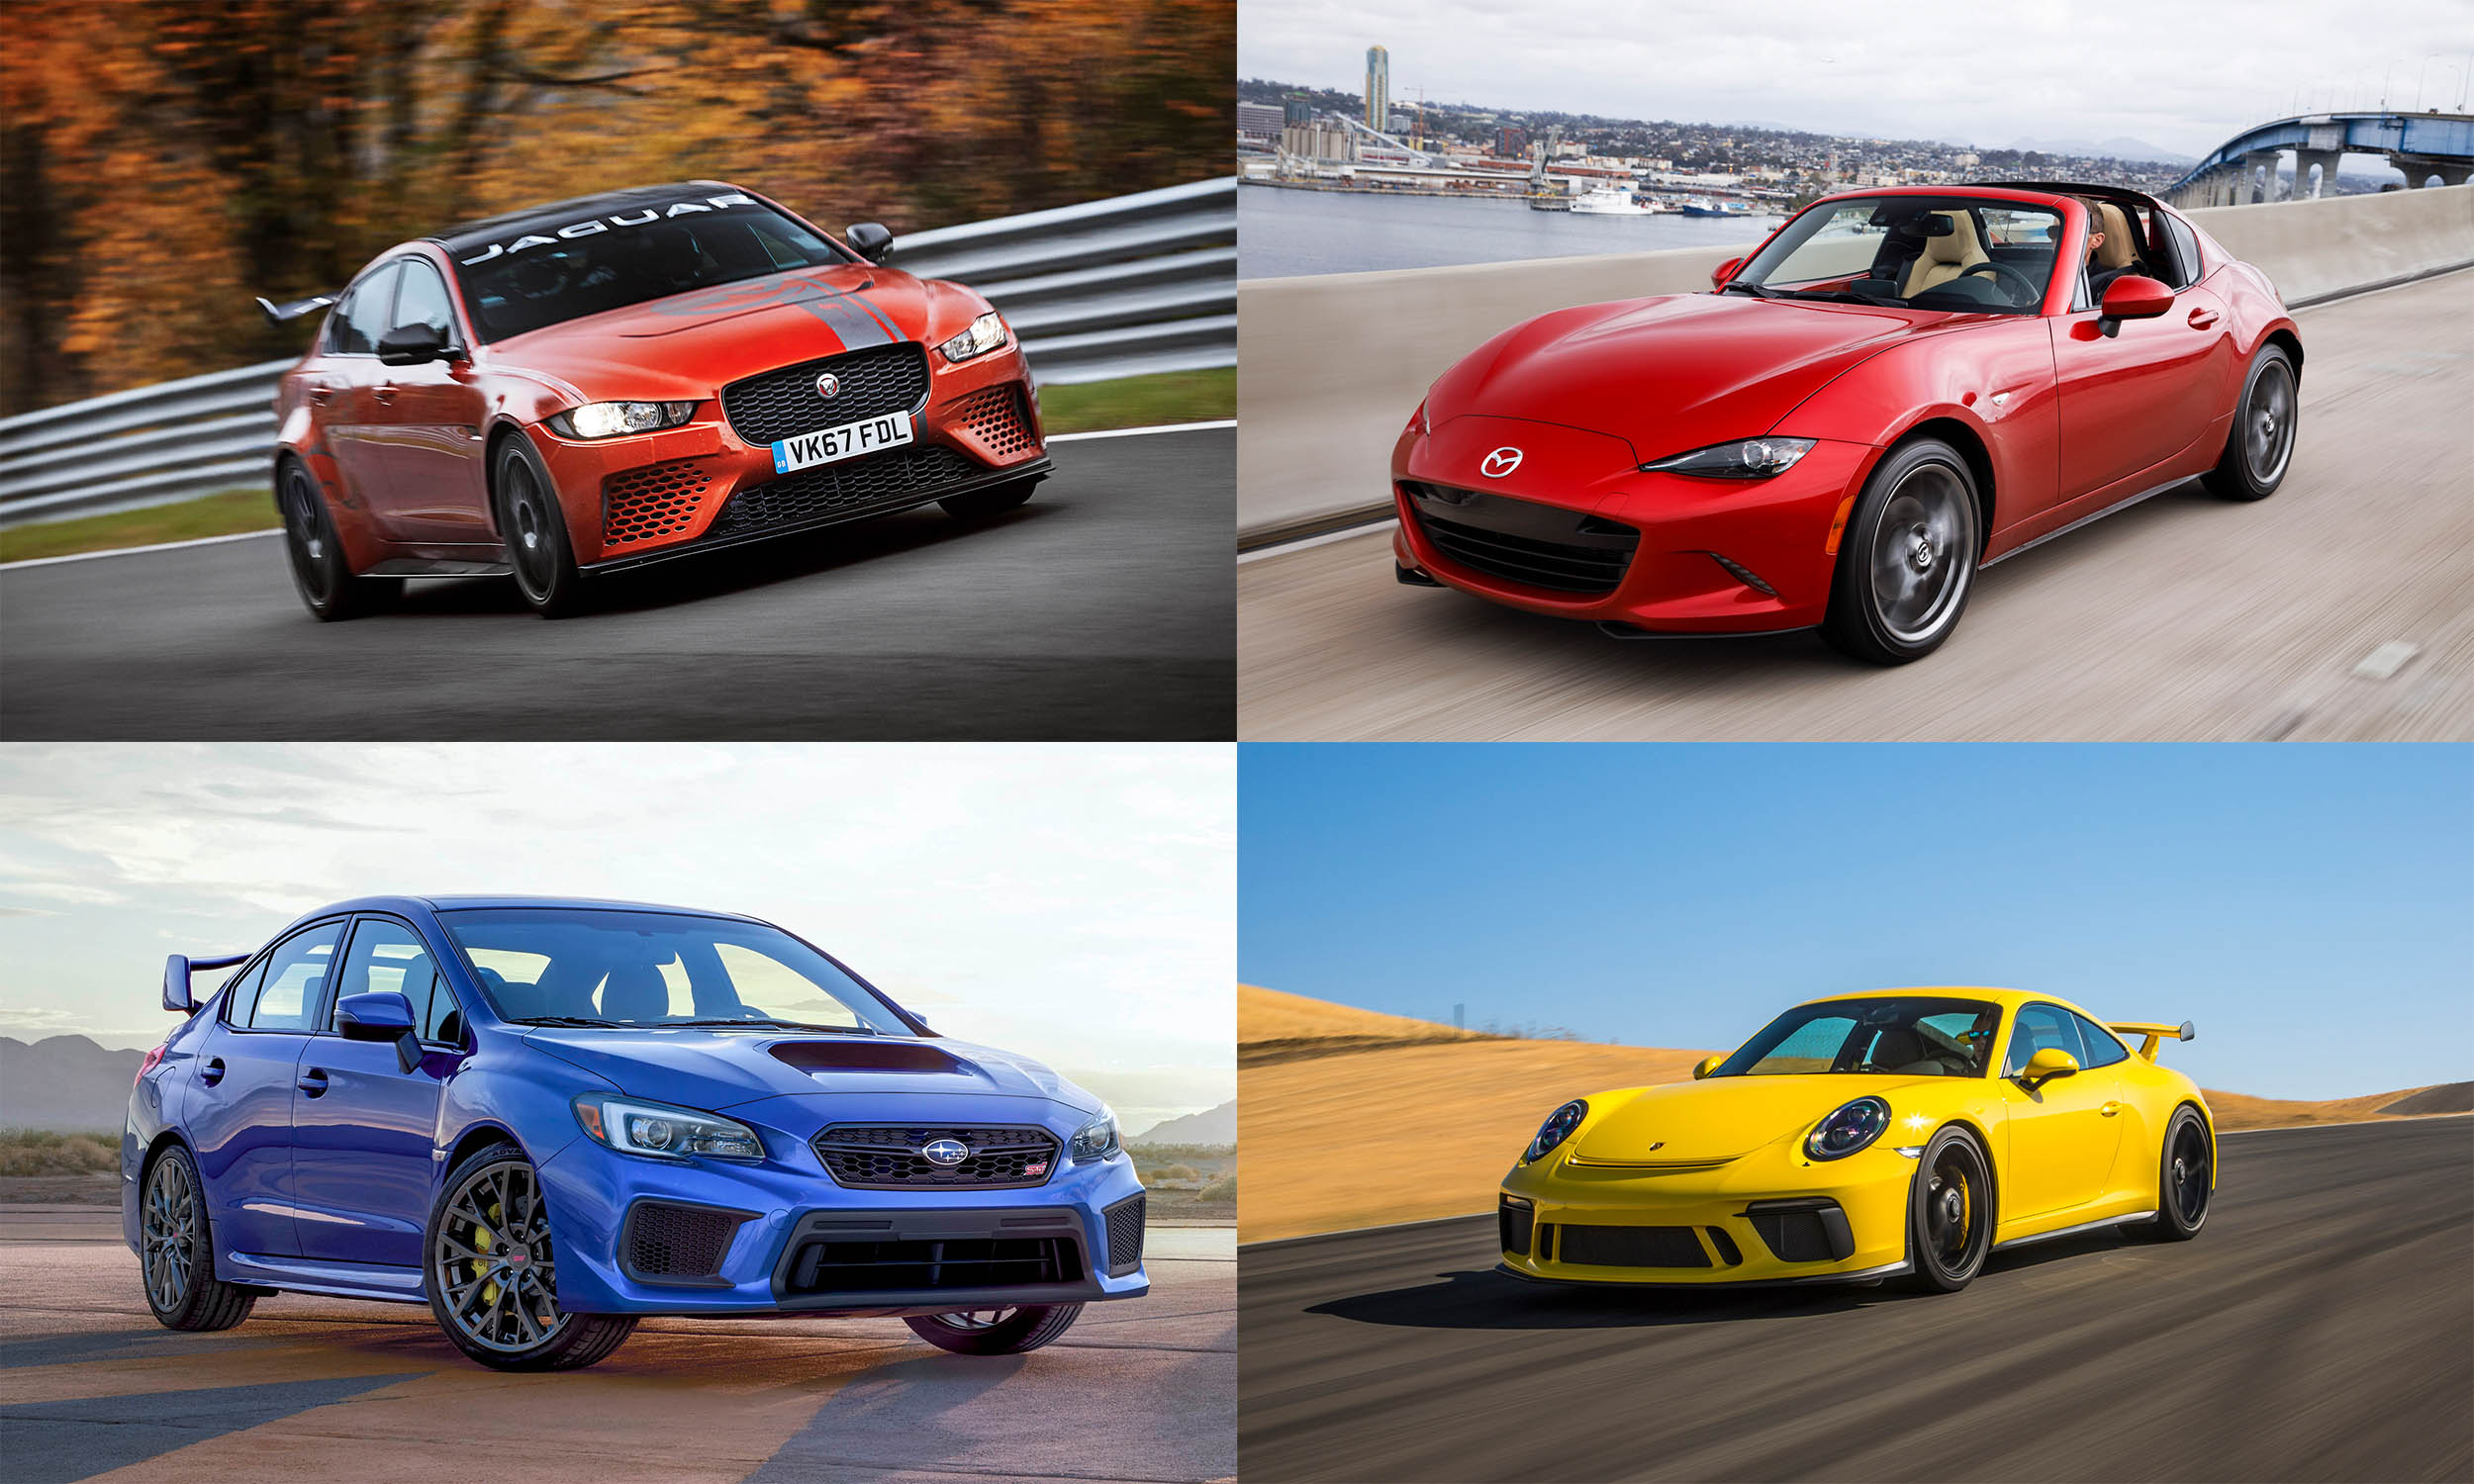 © Jaguar Land Rover, © Subaru of America, © Mazda North American Operations, © Porsche Cars North America